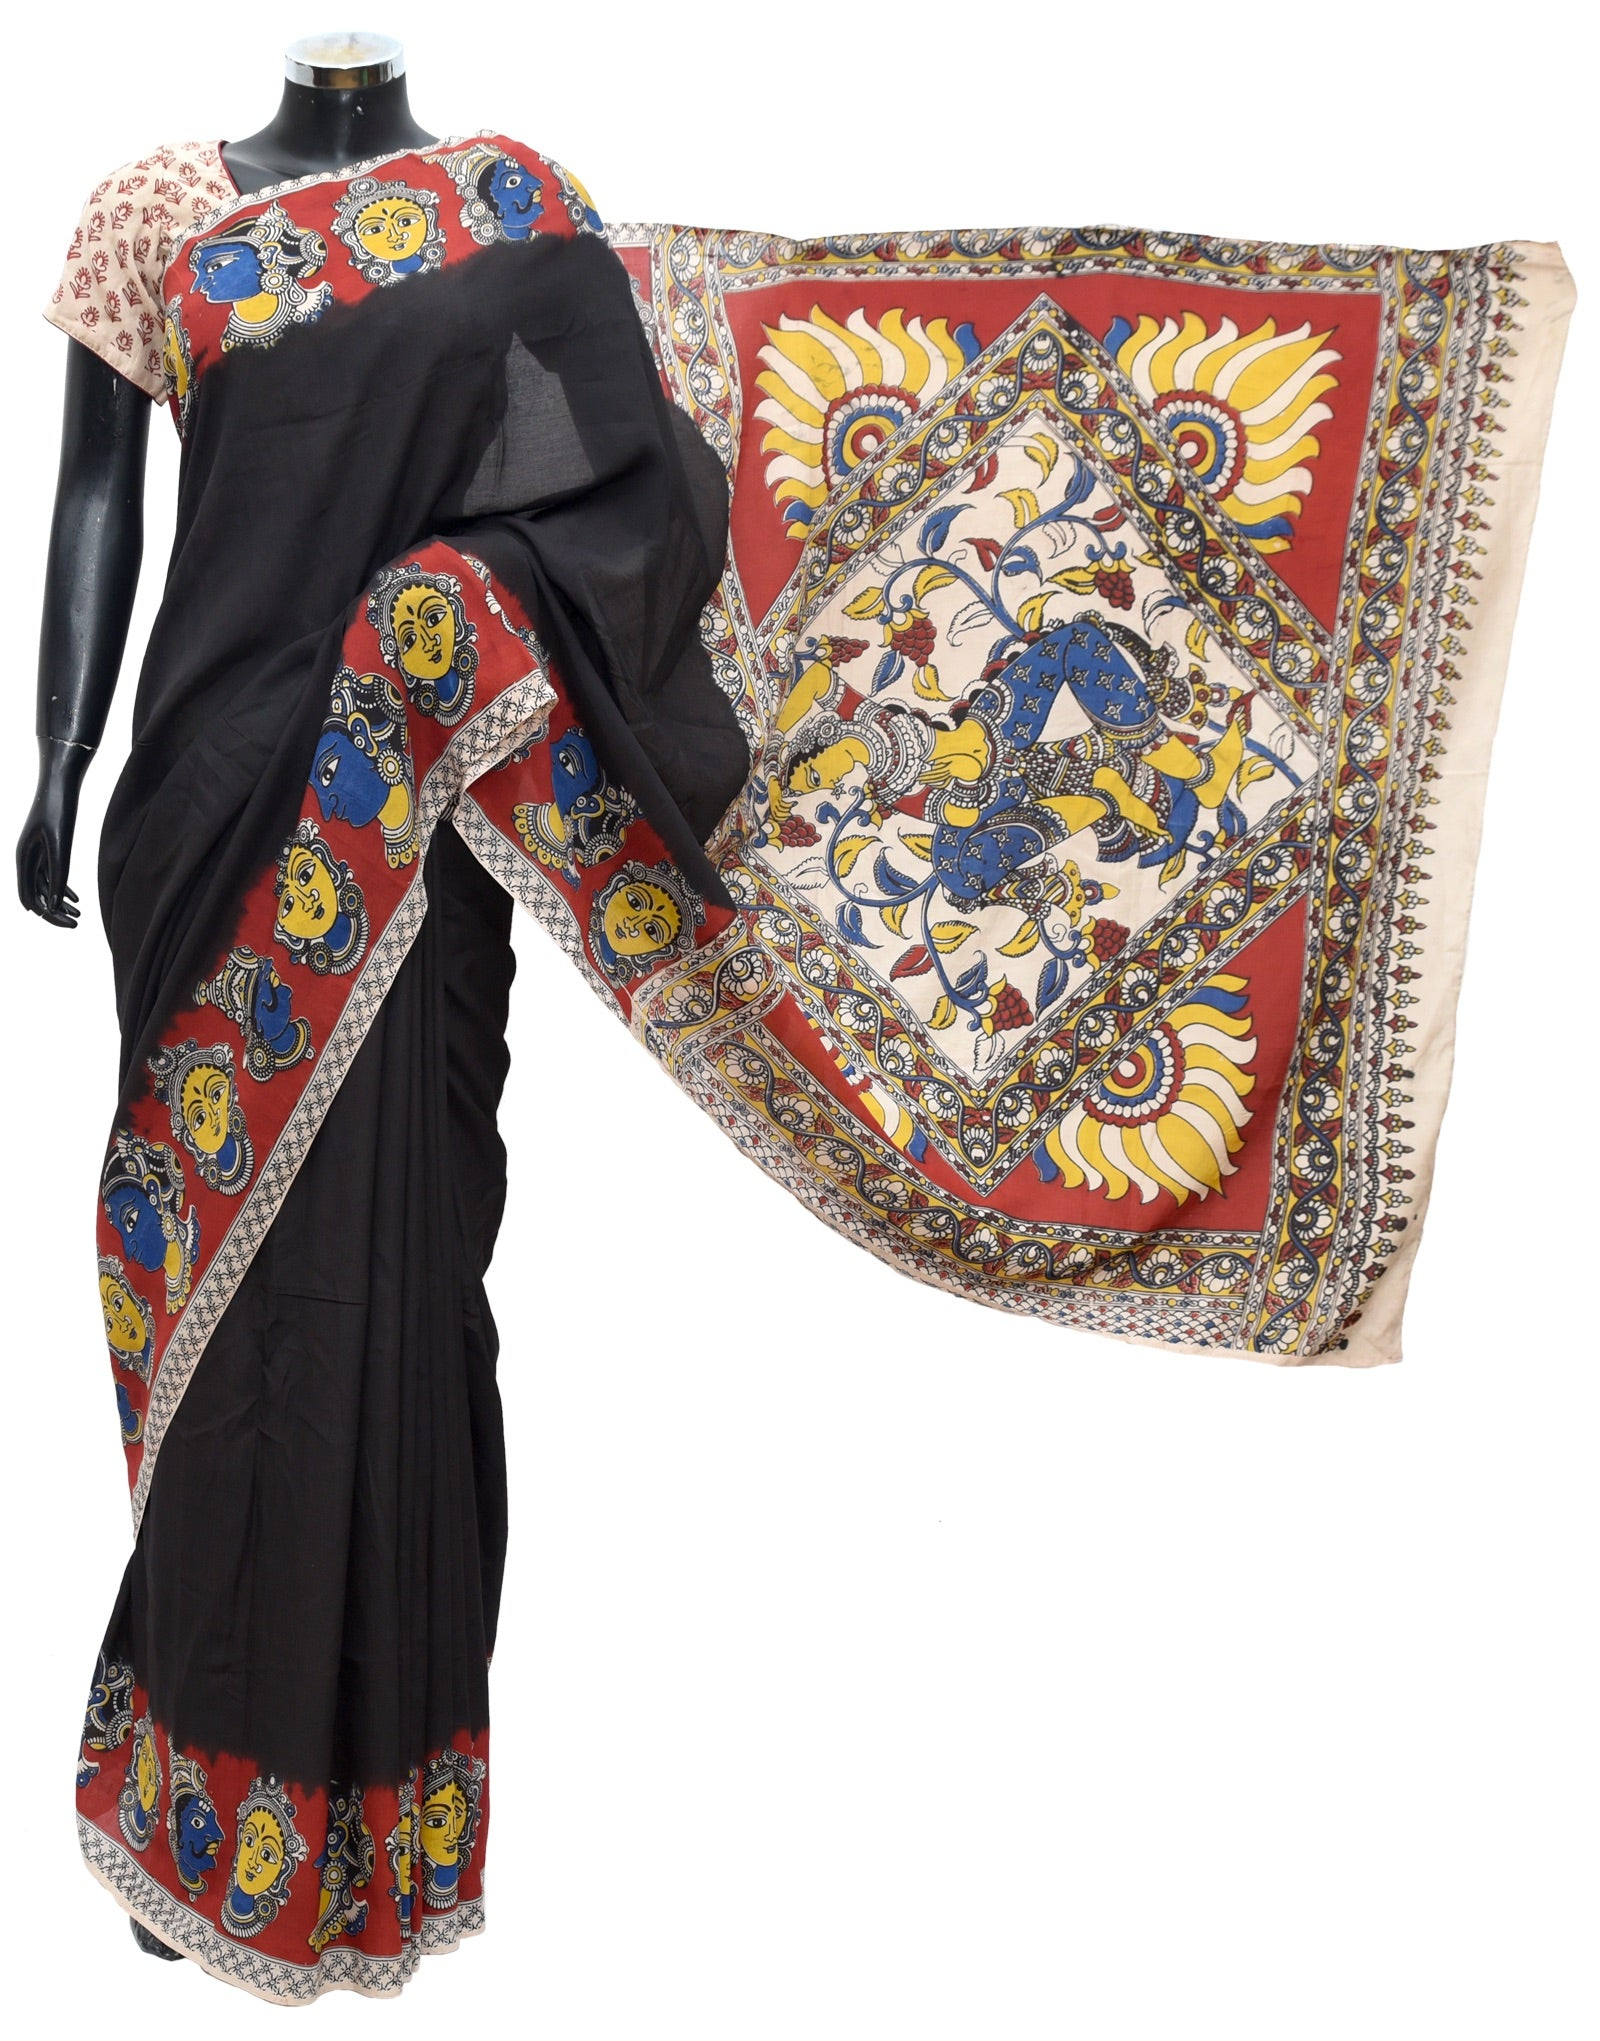 Kalamkari saree soft cotton fdn1001-211